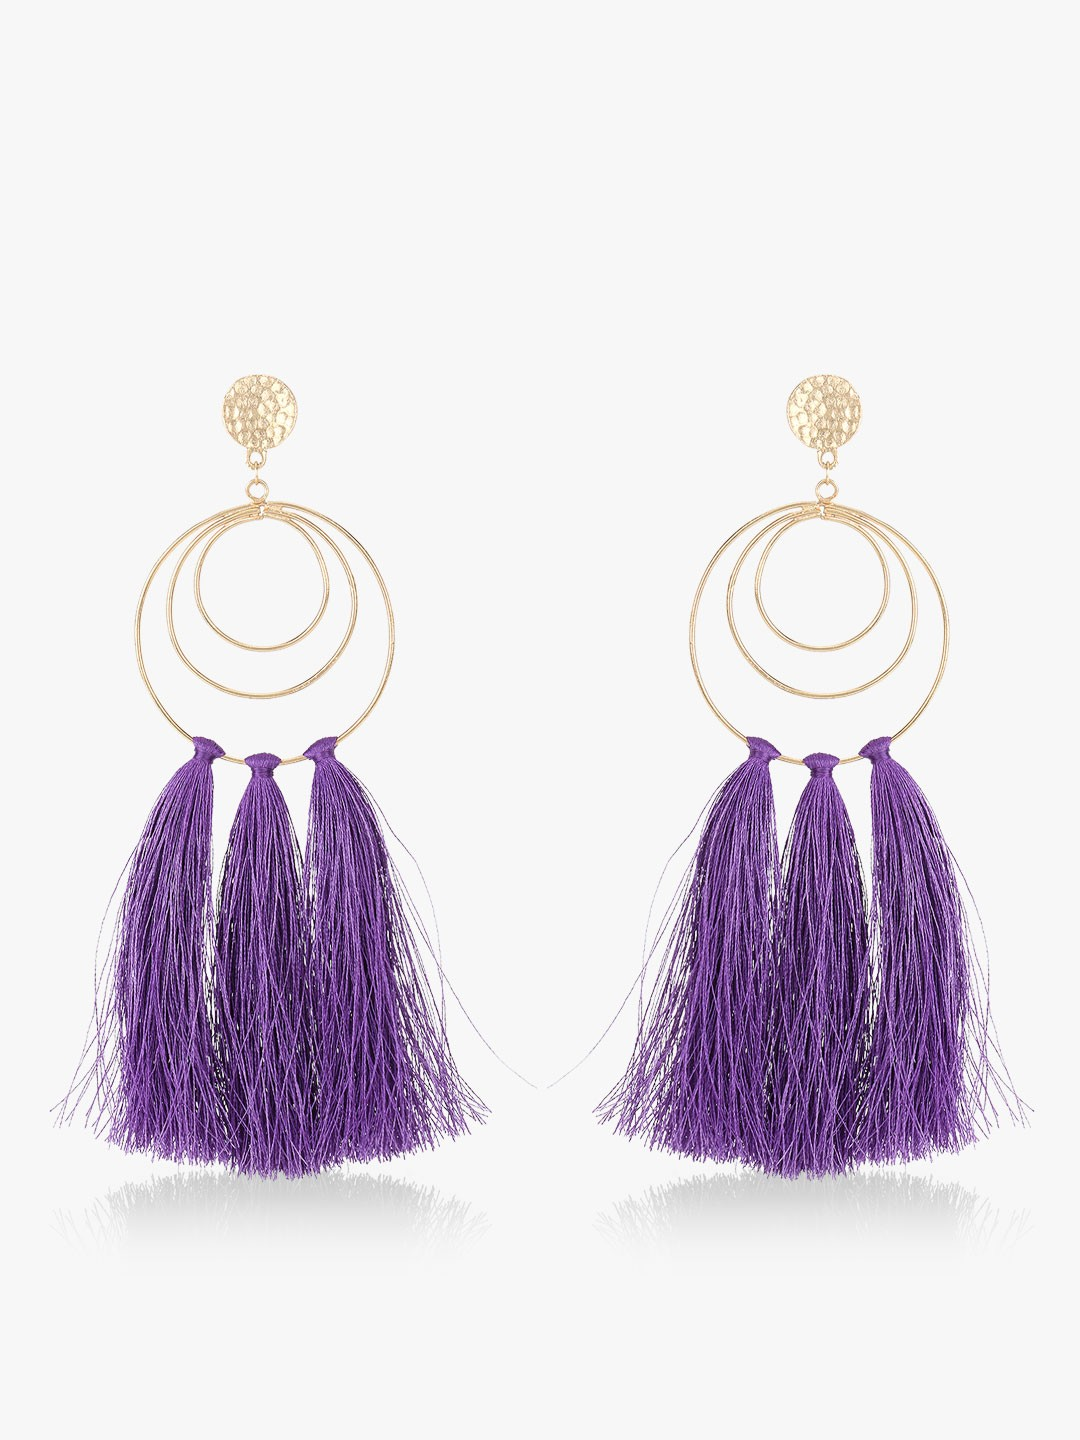 Blueberry Purple Tassel Drop Earrings 1